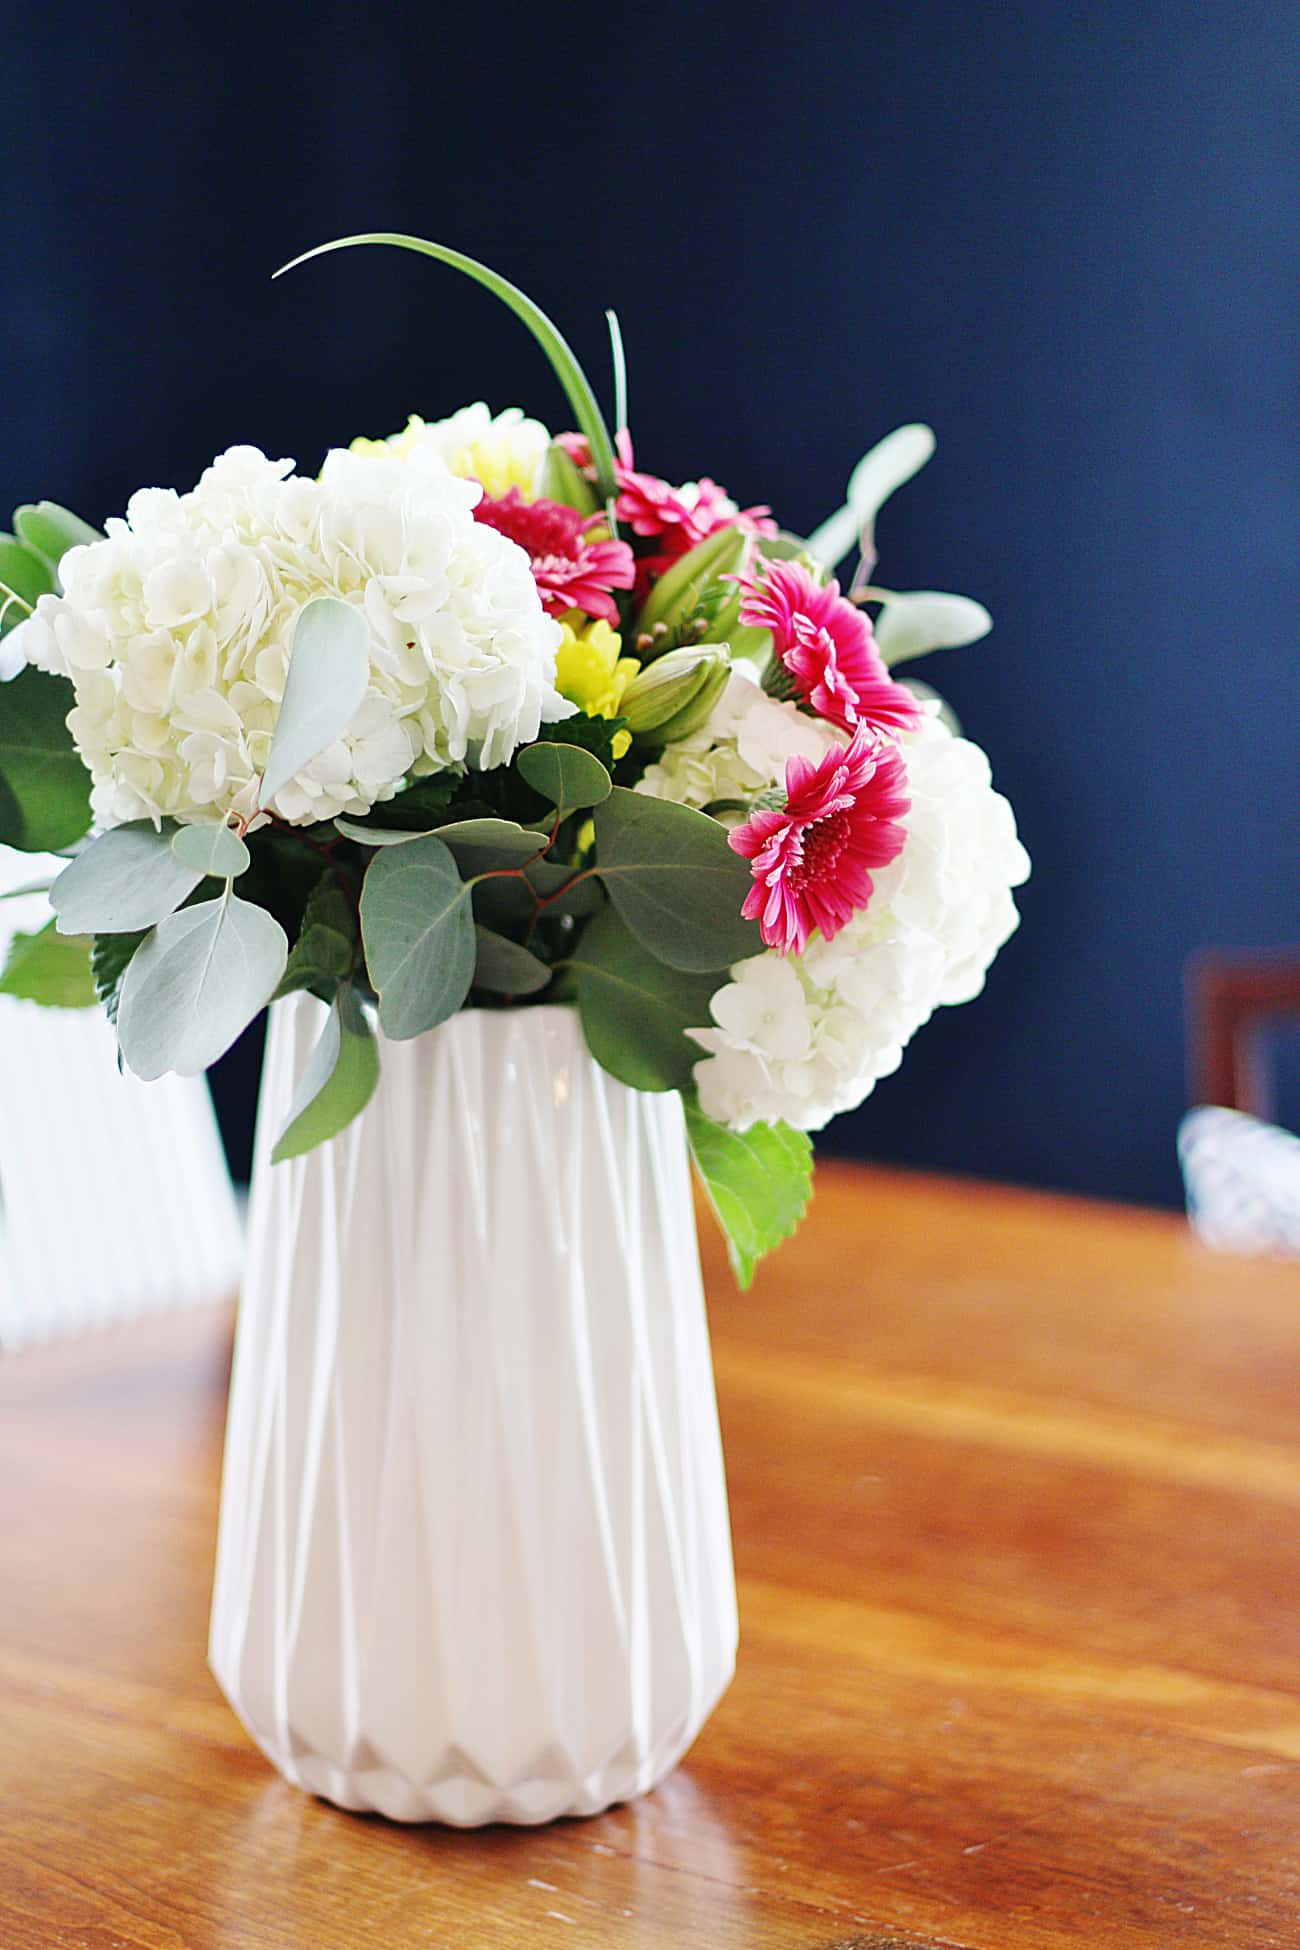 work from home tips flowers